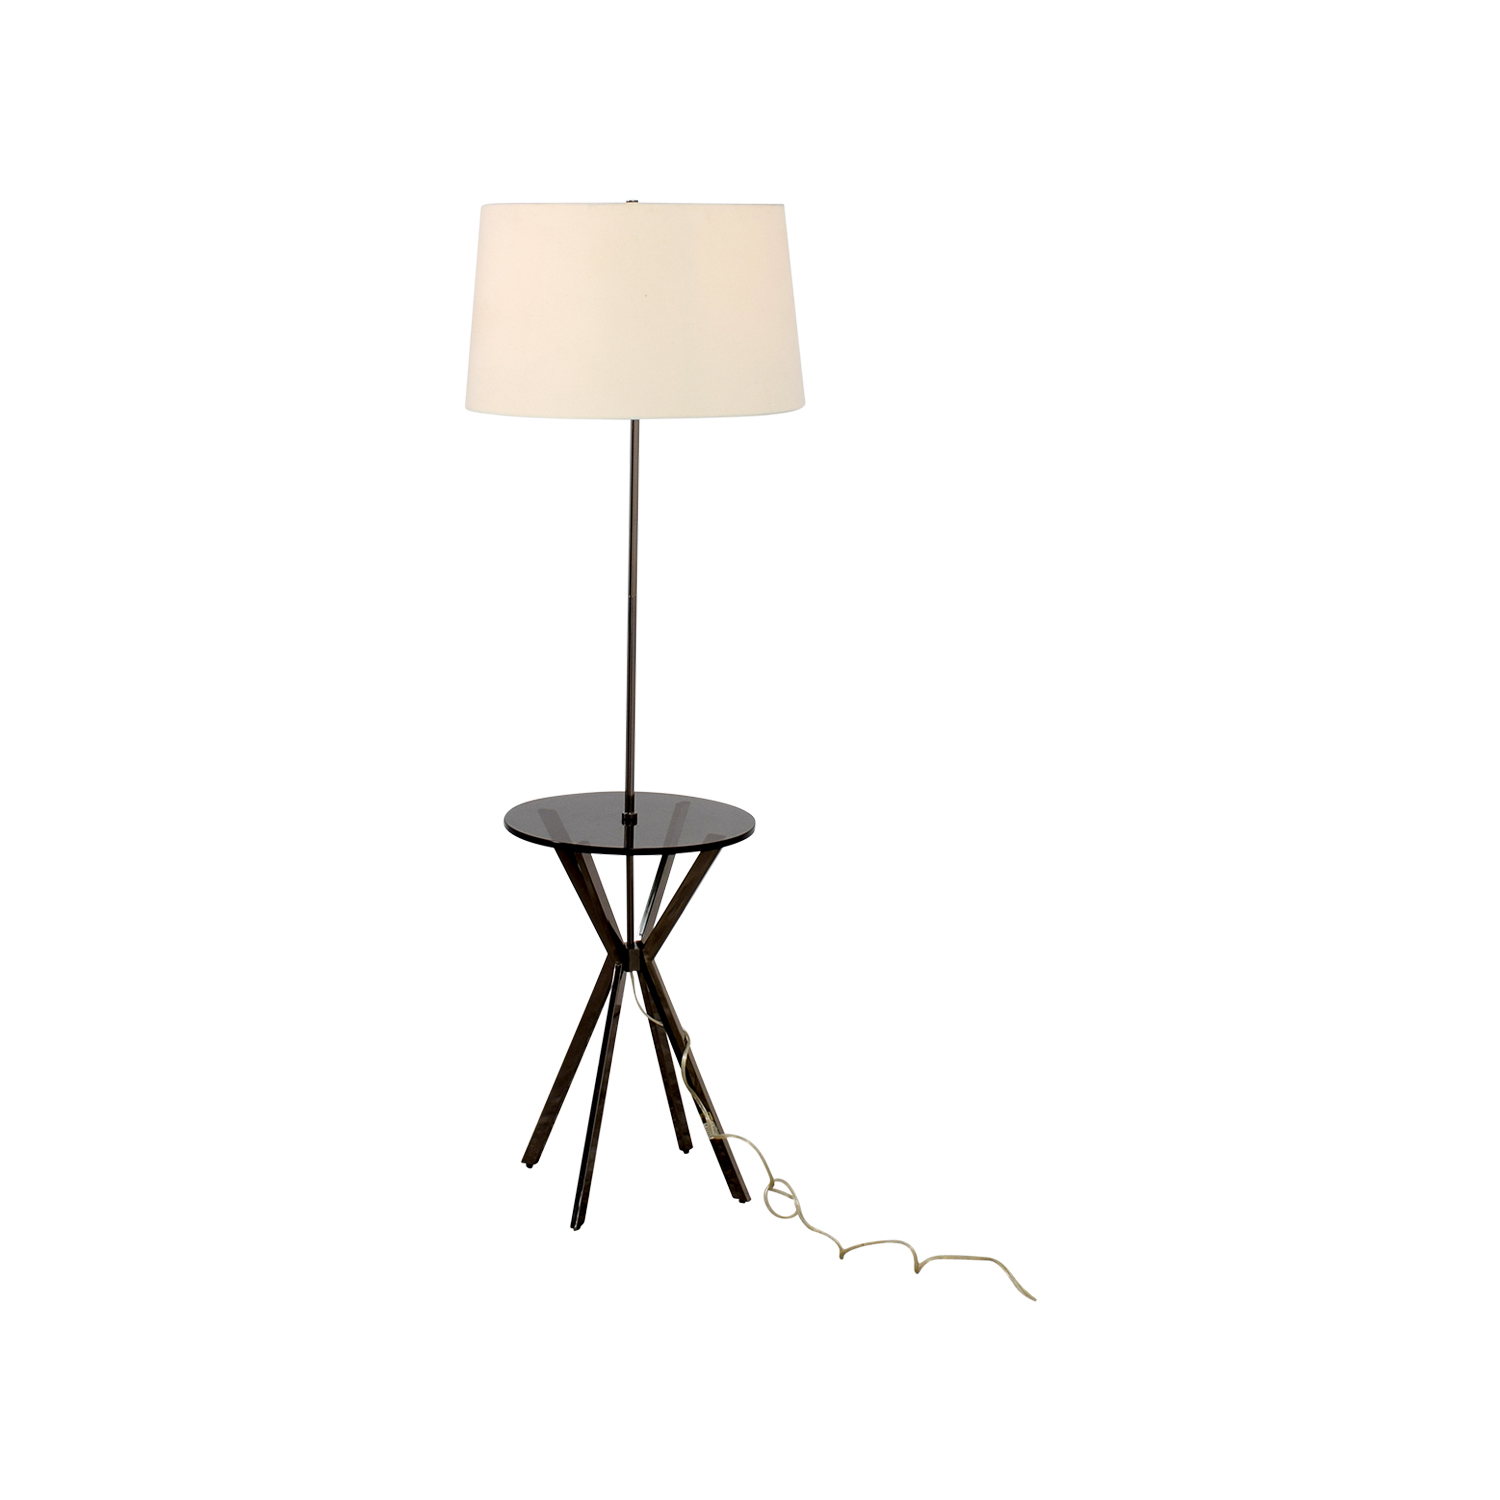 59 off west elm west elm floor lamp with table attached decor west elm west elm floor lamp with table attached second hand aloadofball Gallery